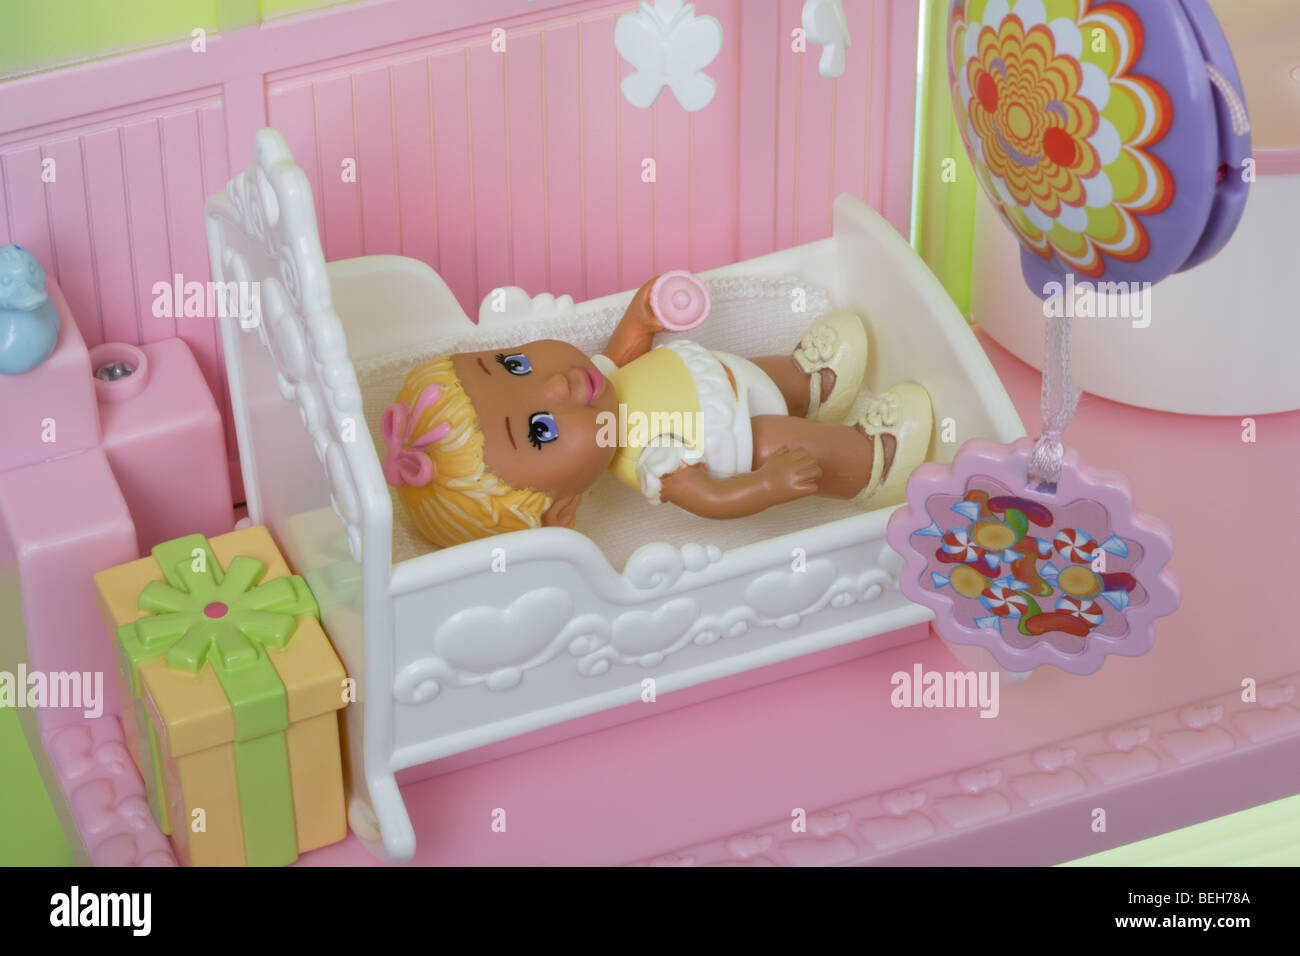 Baby girl doll in her cot - Stock Image